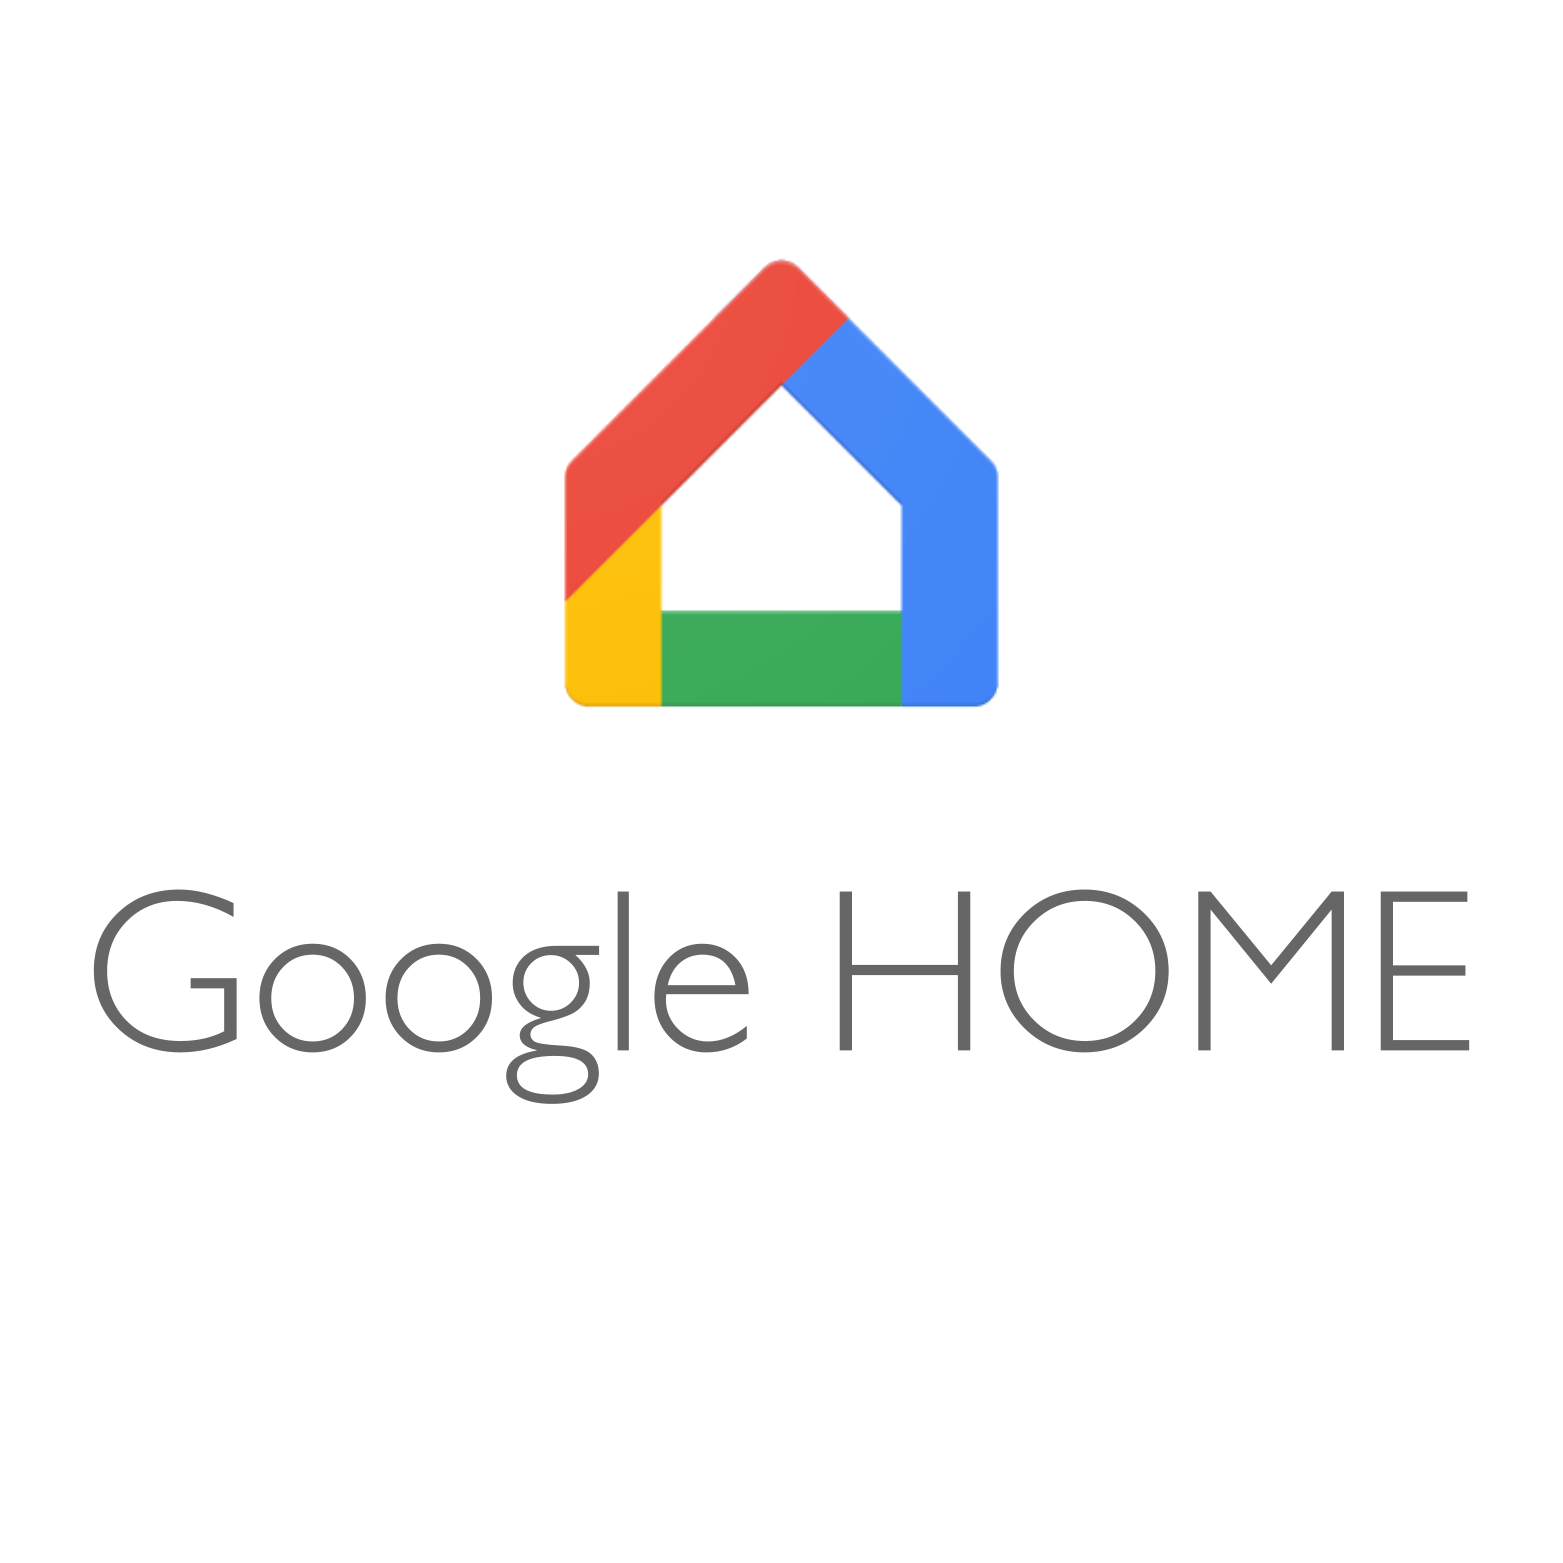 Google Assistant Echo Amazon Logo Home Chromebook PNG Image